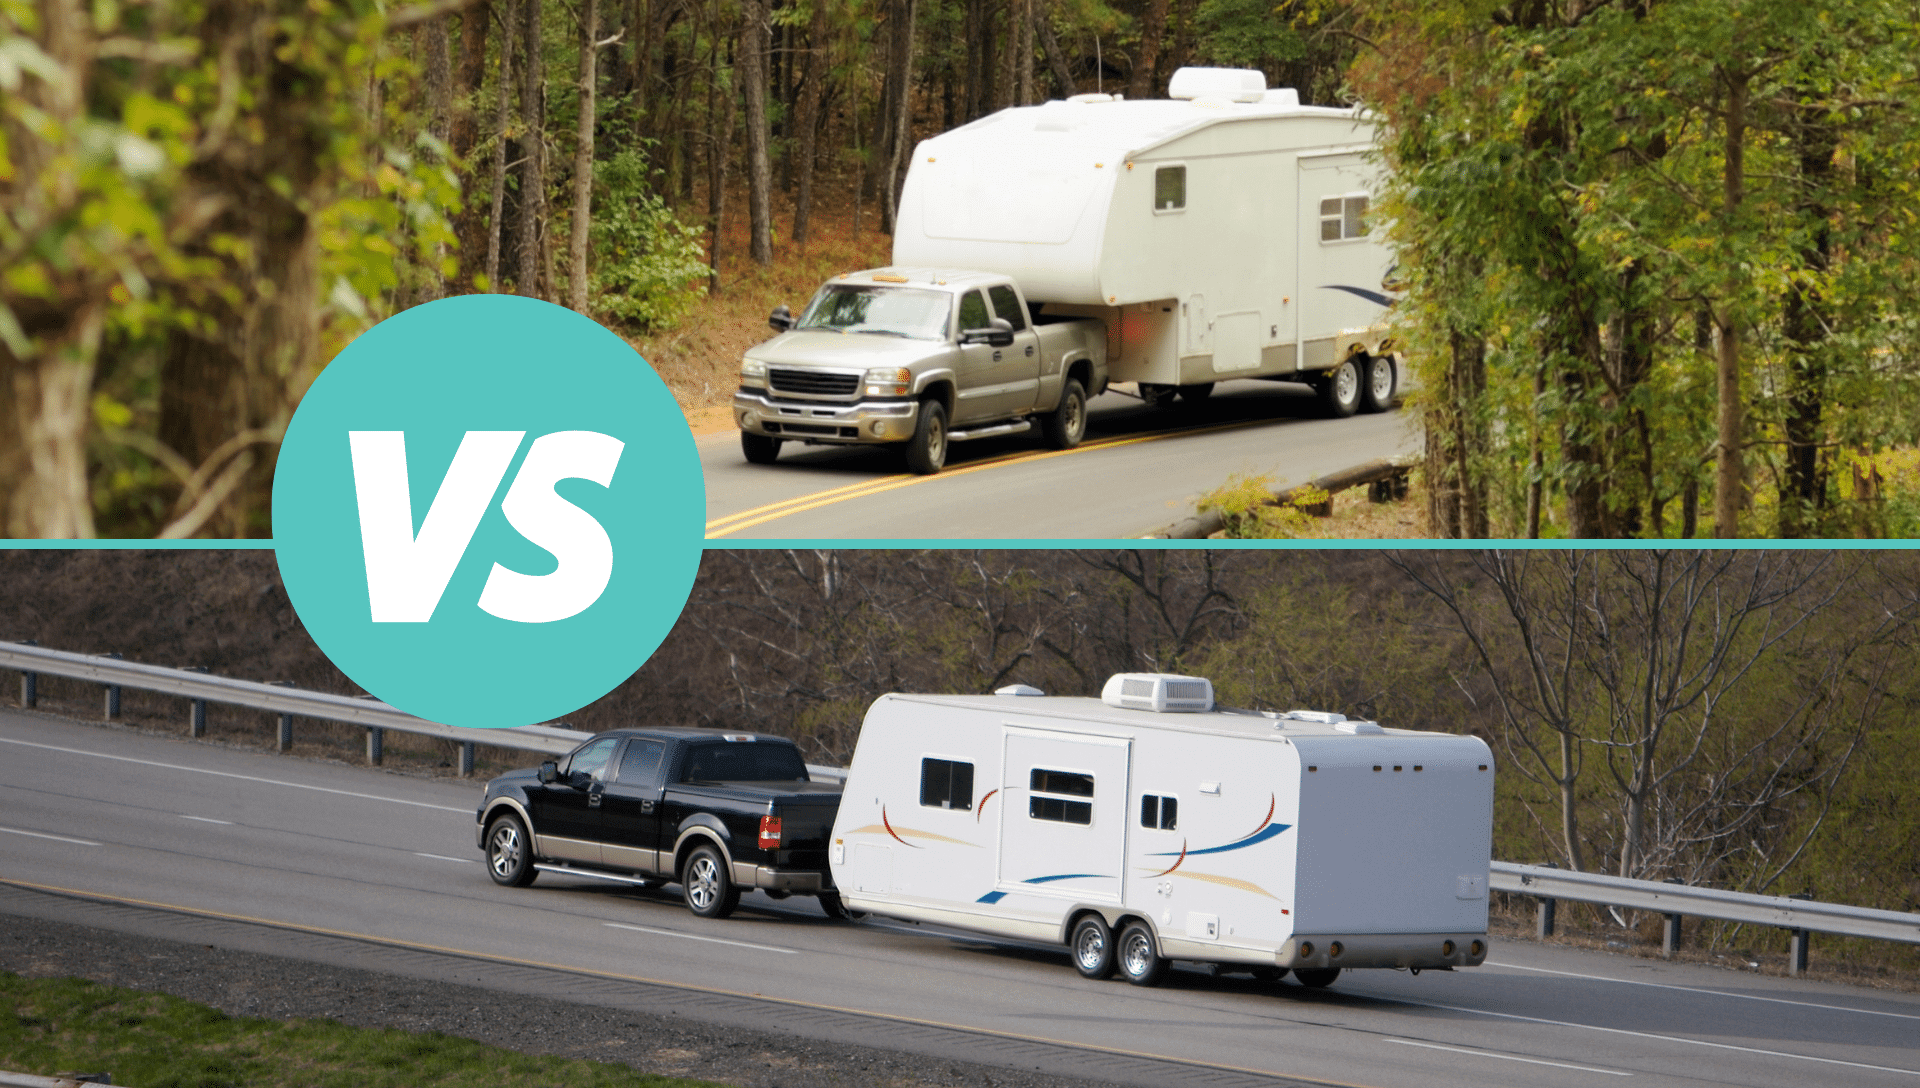 The top image is a fifth wheel being towed behind a pickup truck. The bottom image is a travel trailer being towed by a pickup truck. We compare the differences of a 5th wheel vs a travel trailer.